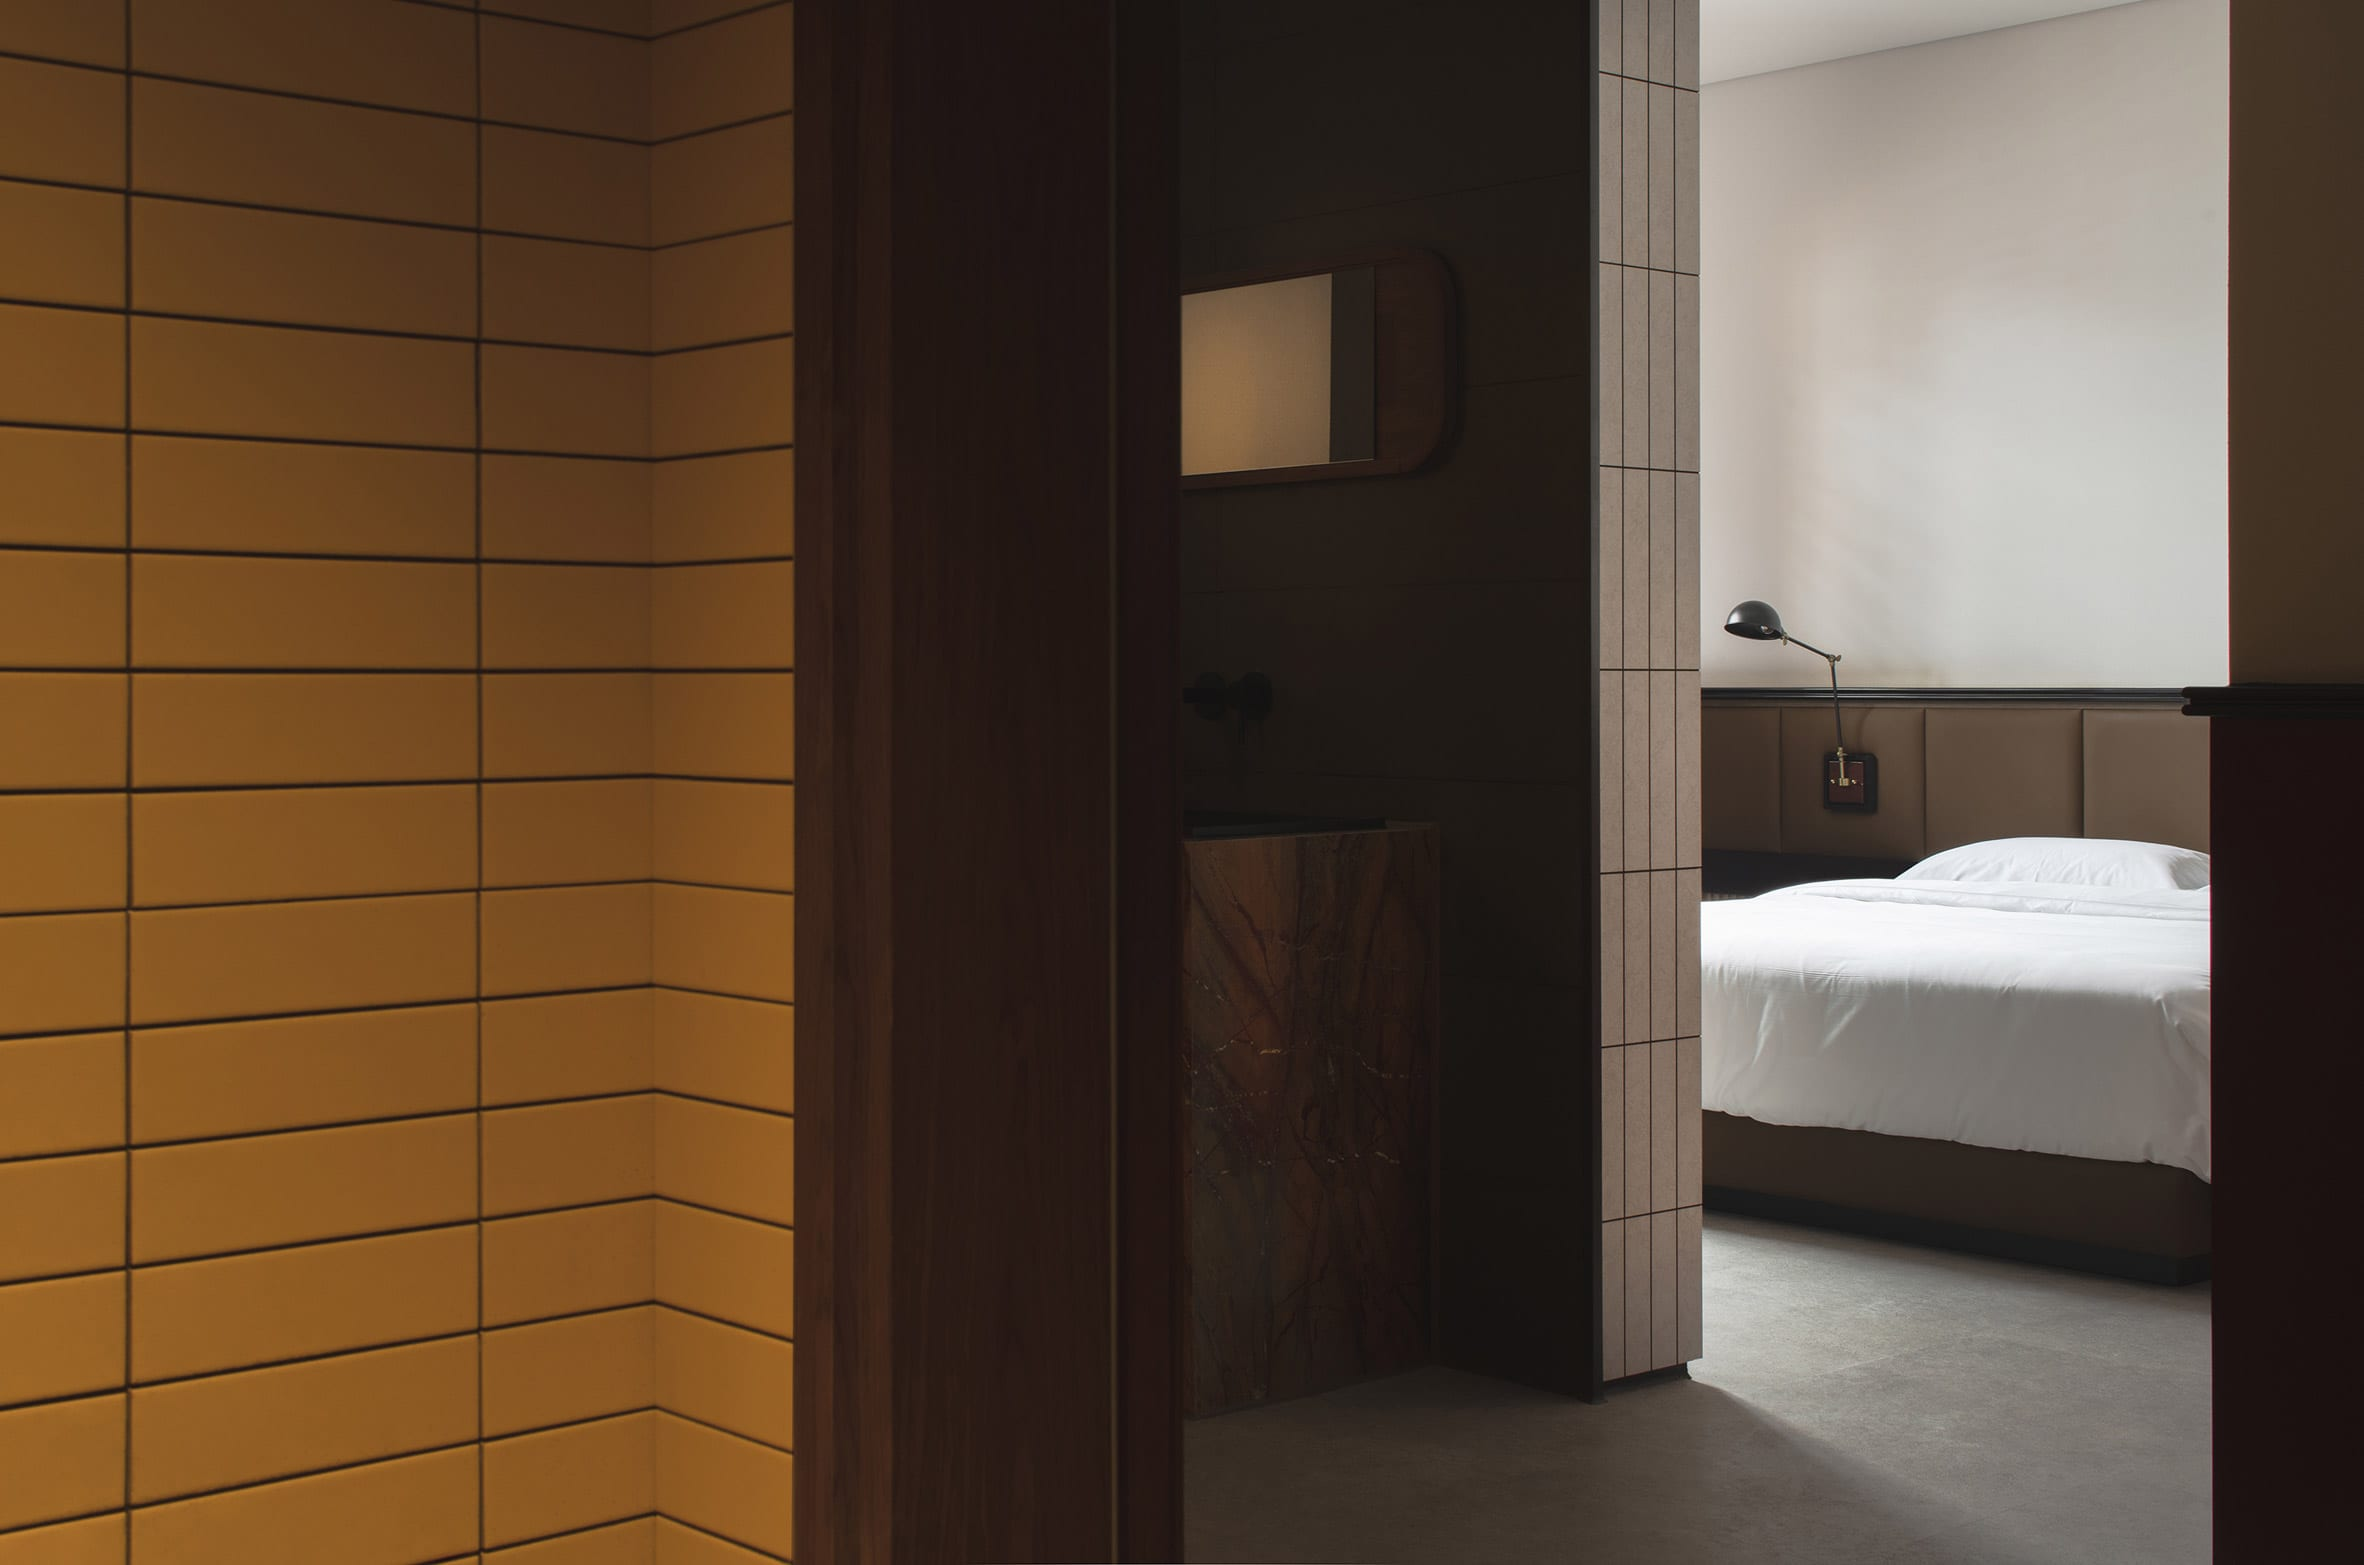 Yellow-tiled hallways and bed with white sheets in hotel interior by Archetype